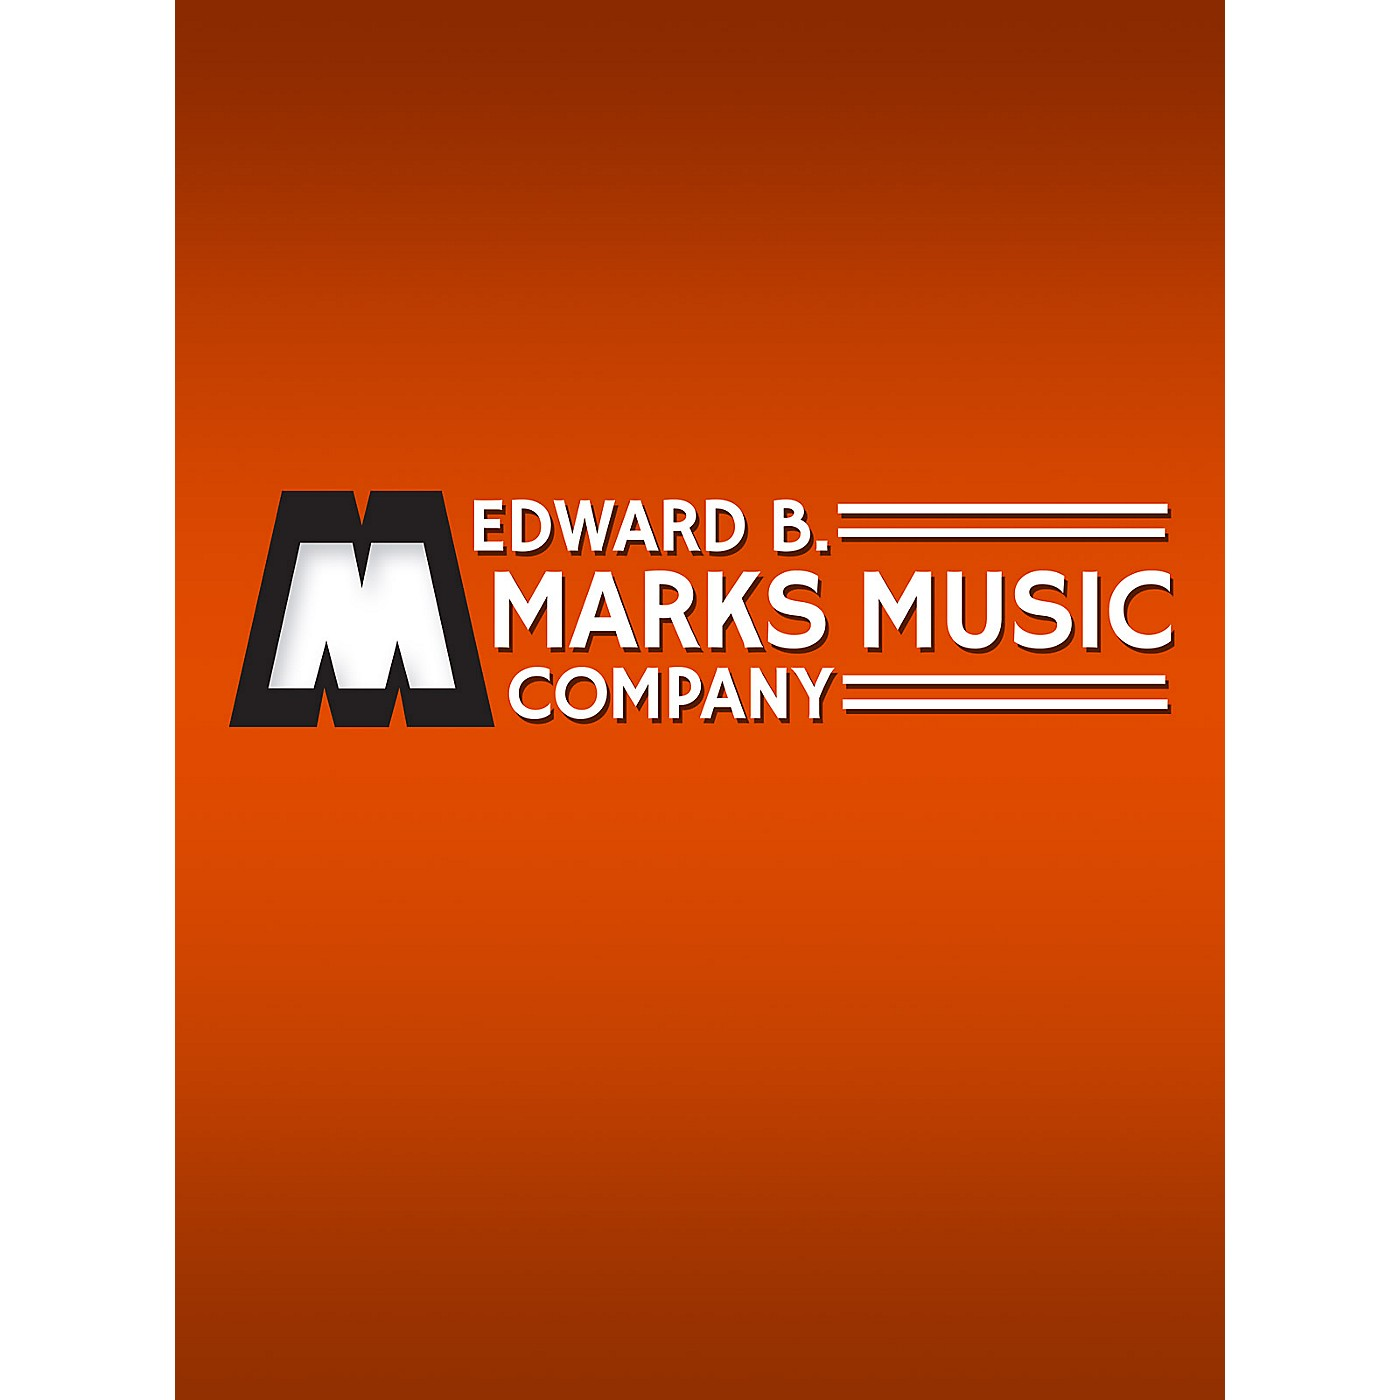 Edward B. Marks Music Company Improvise by Learning How to Compose Evans Piano Education Series thumbnail